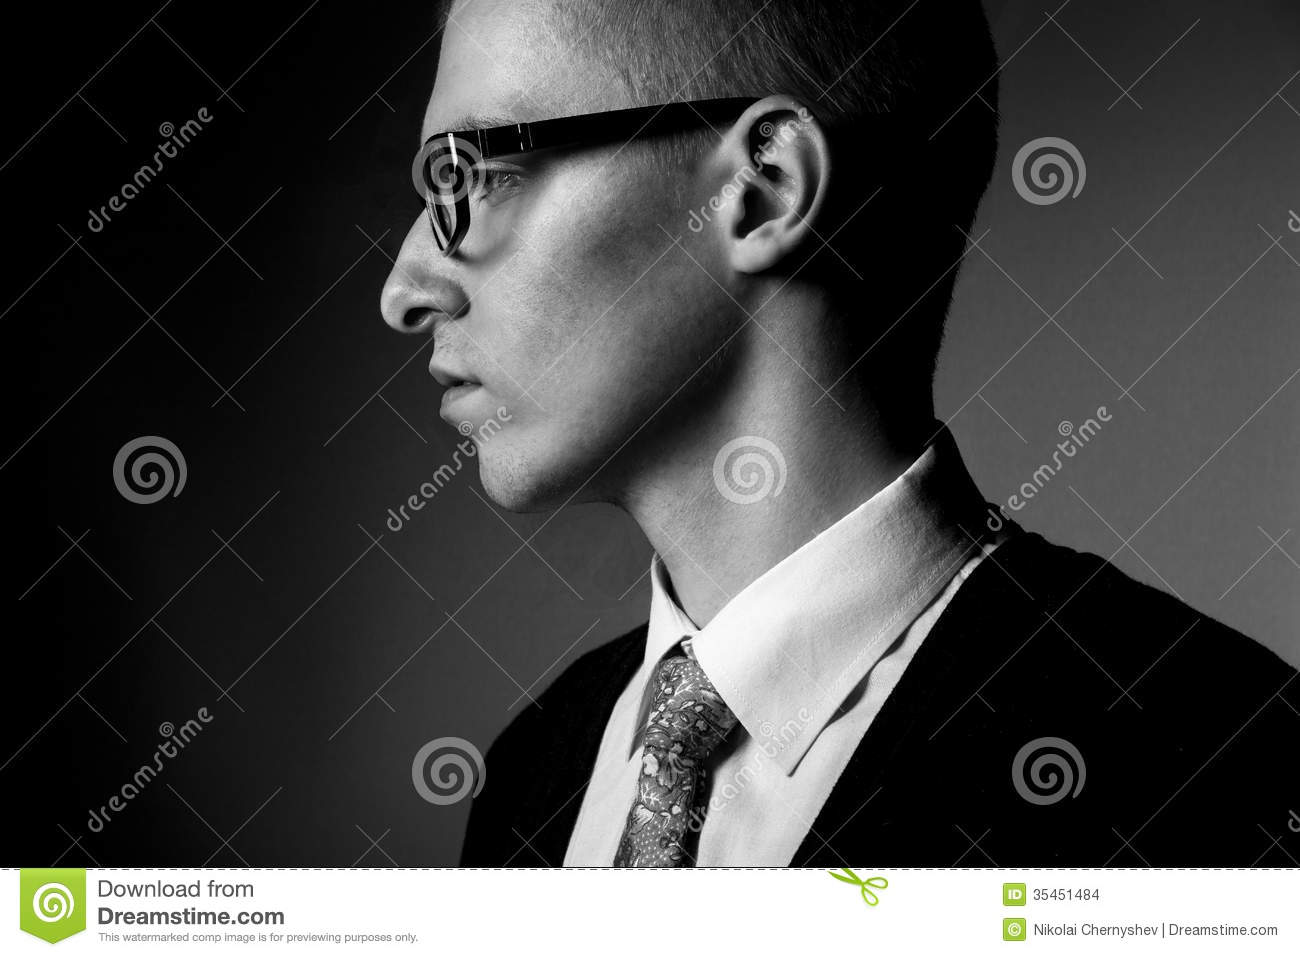 thinking-young-man-profile-bw-portrait-p